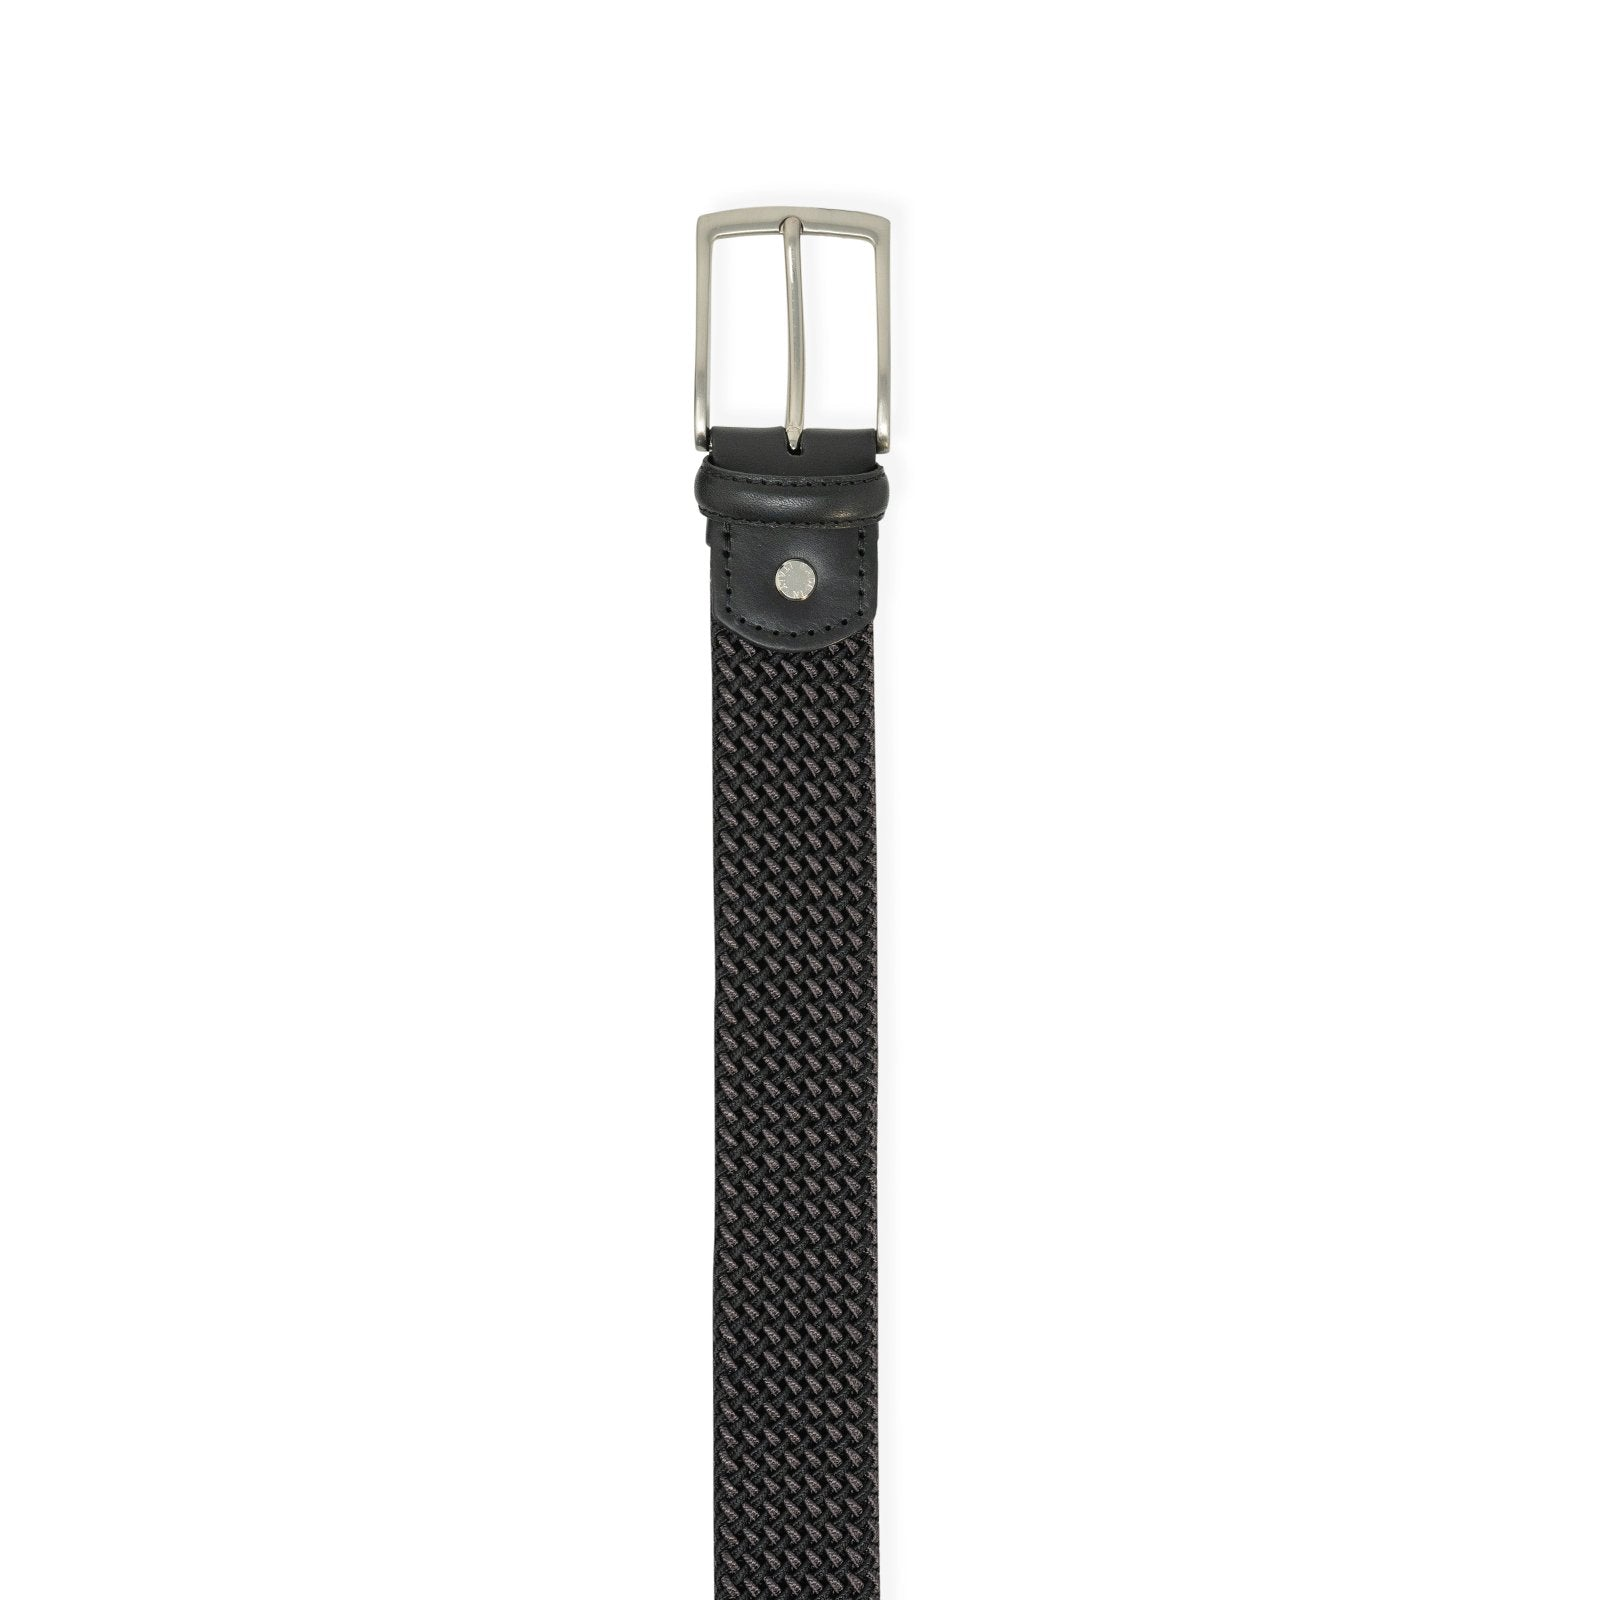 Intrecciato Corda Belt ELASTICO in Black - Jennifer Tattanelli